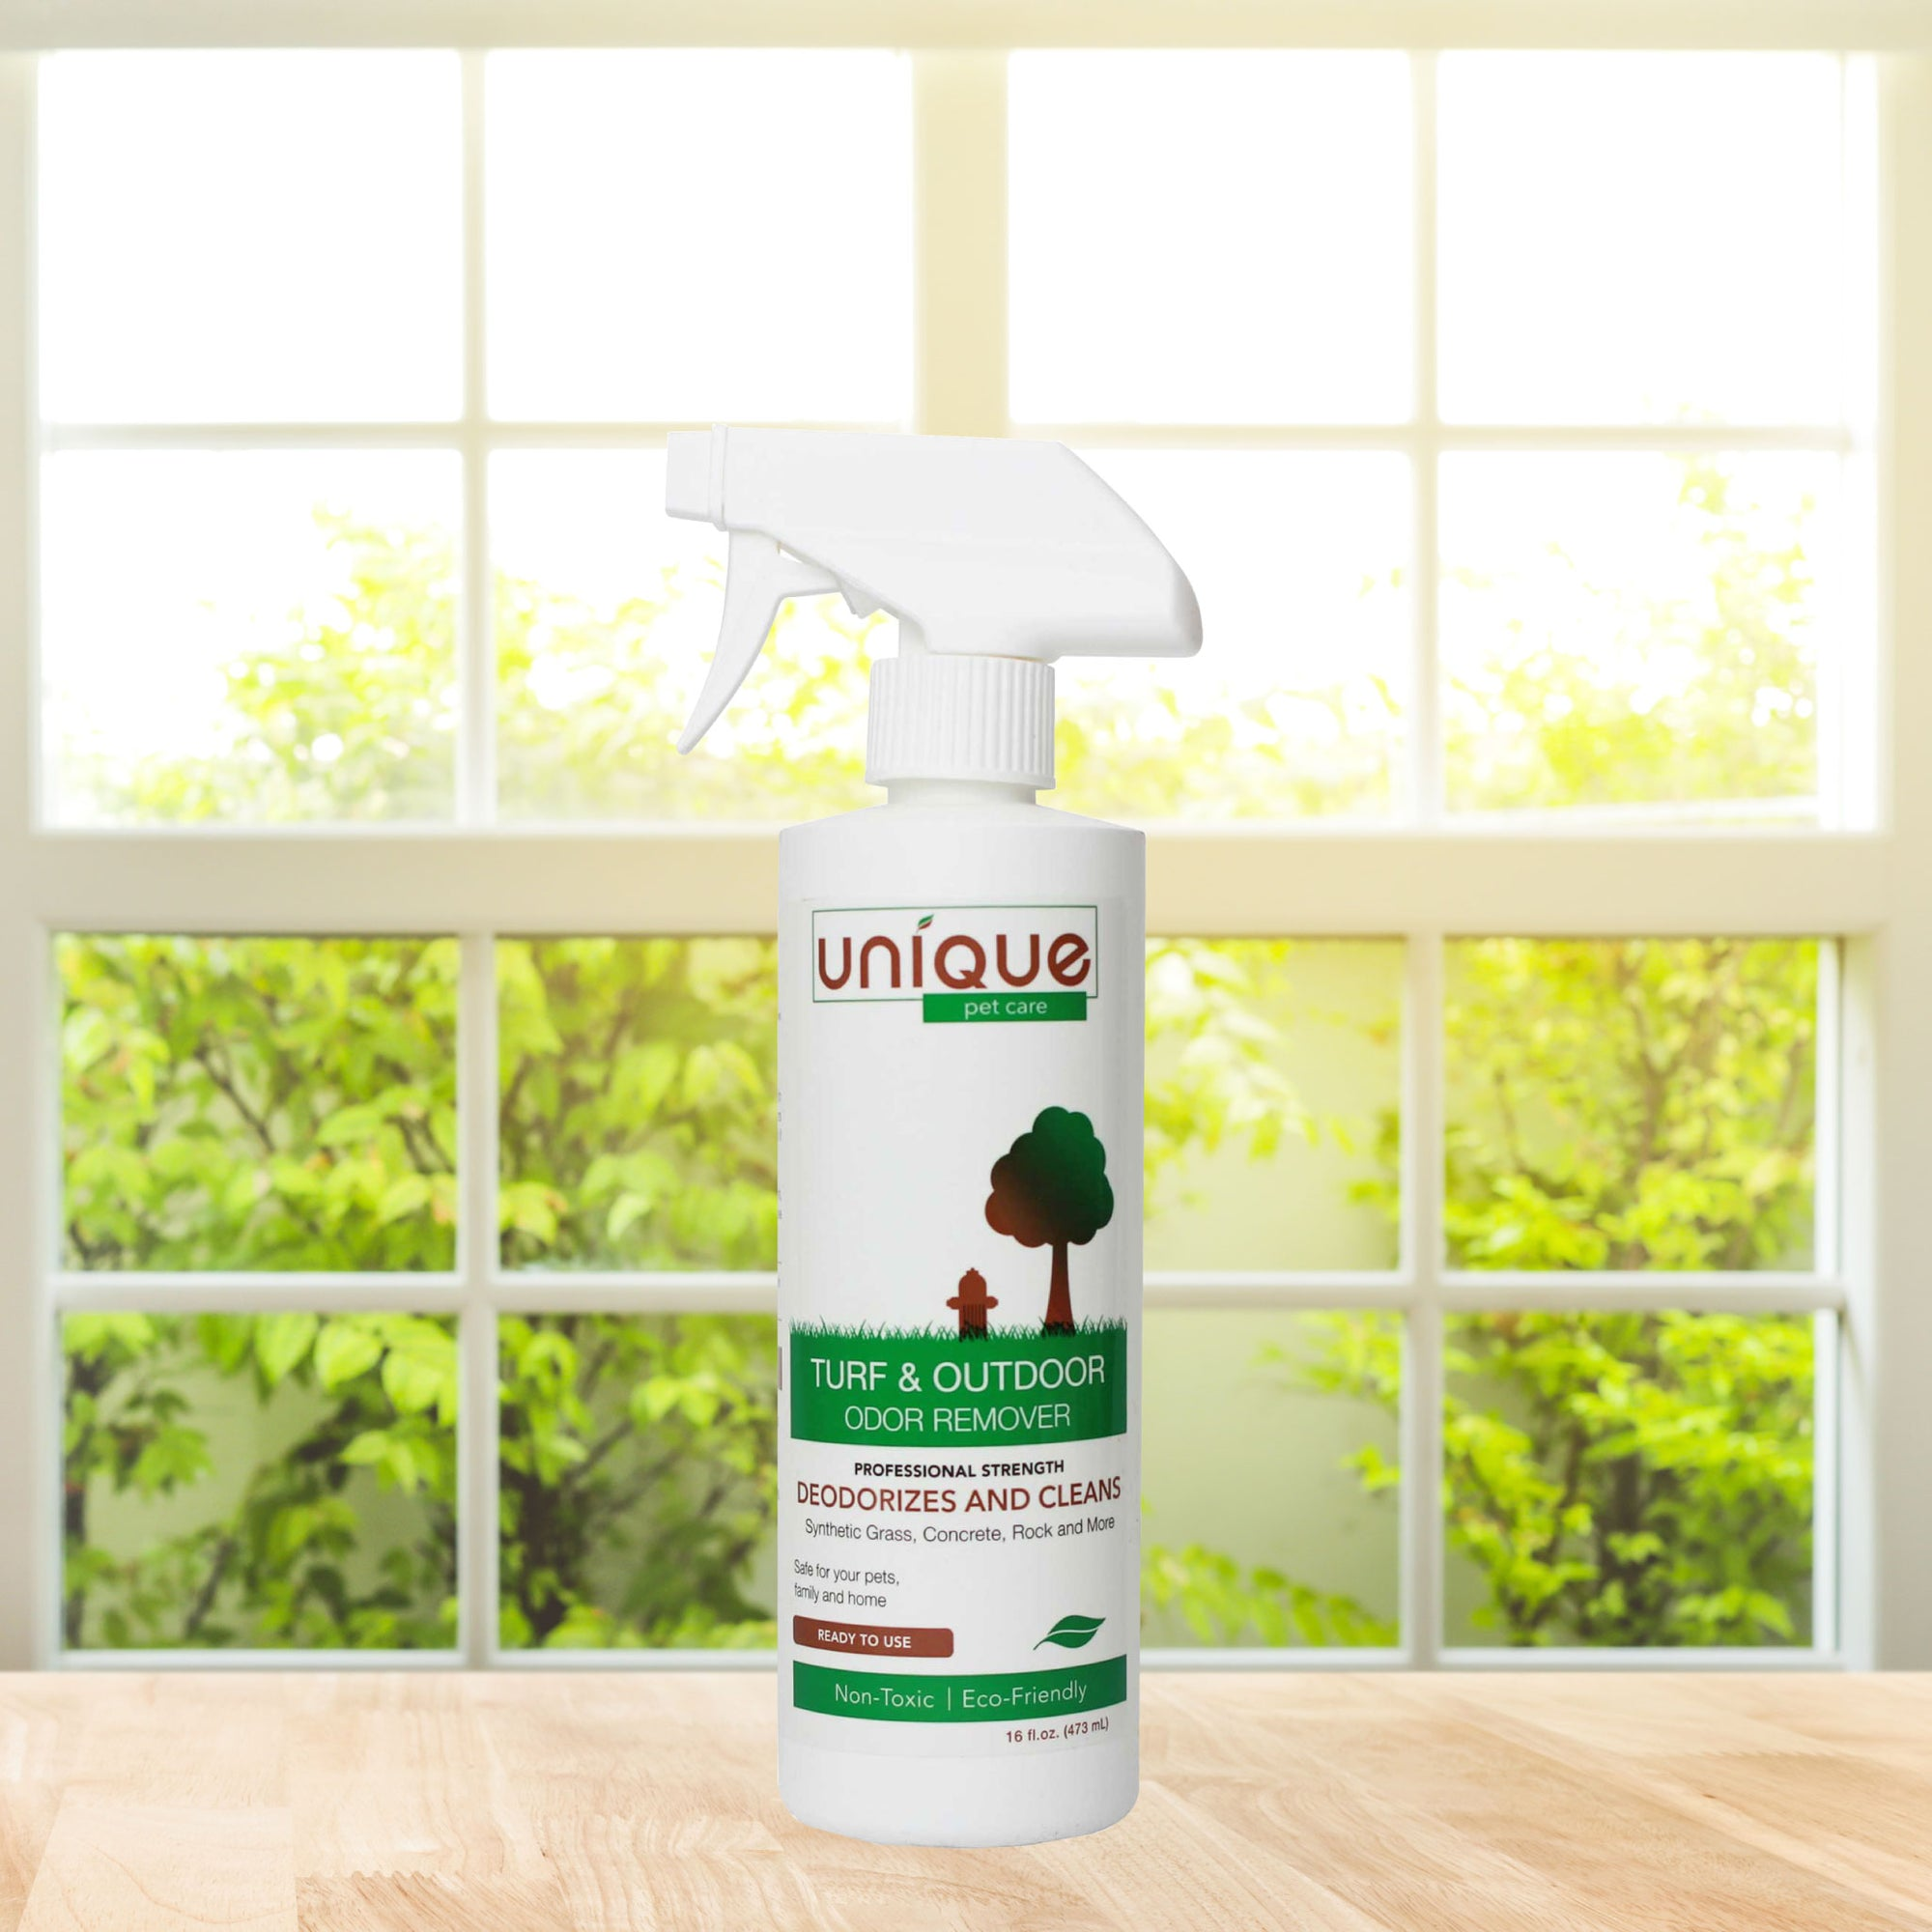 Turf + Outdoor Odor Remover